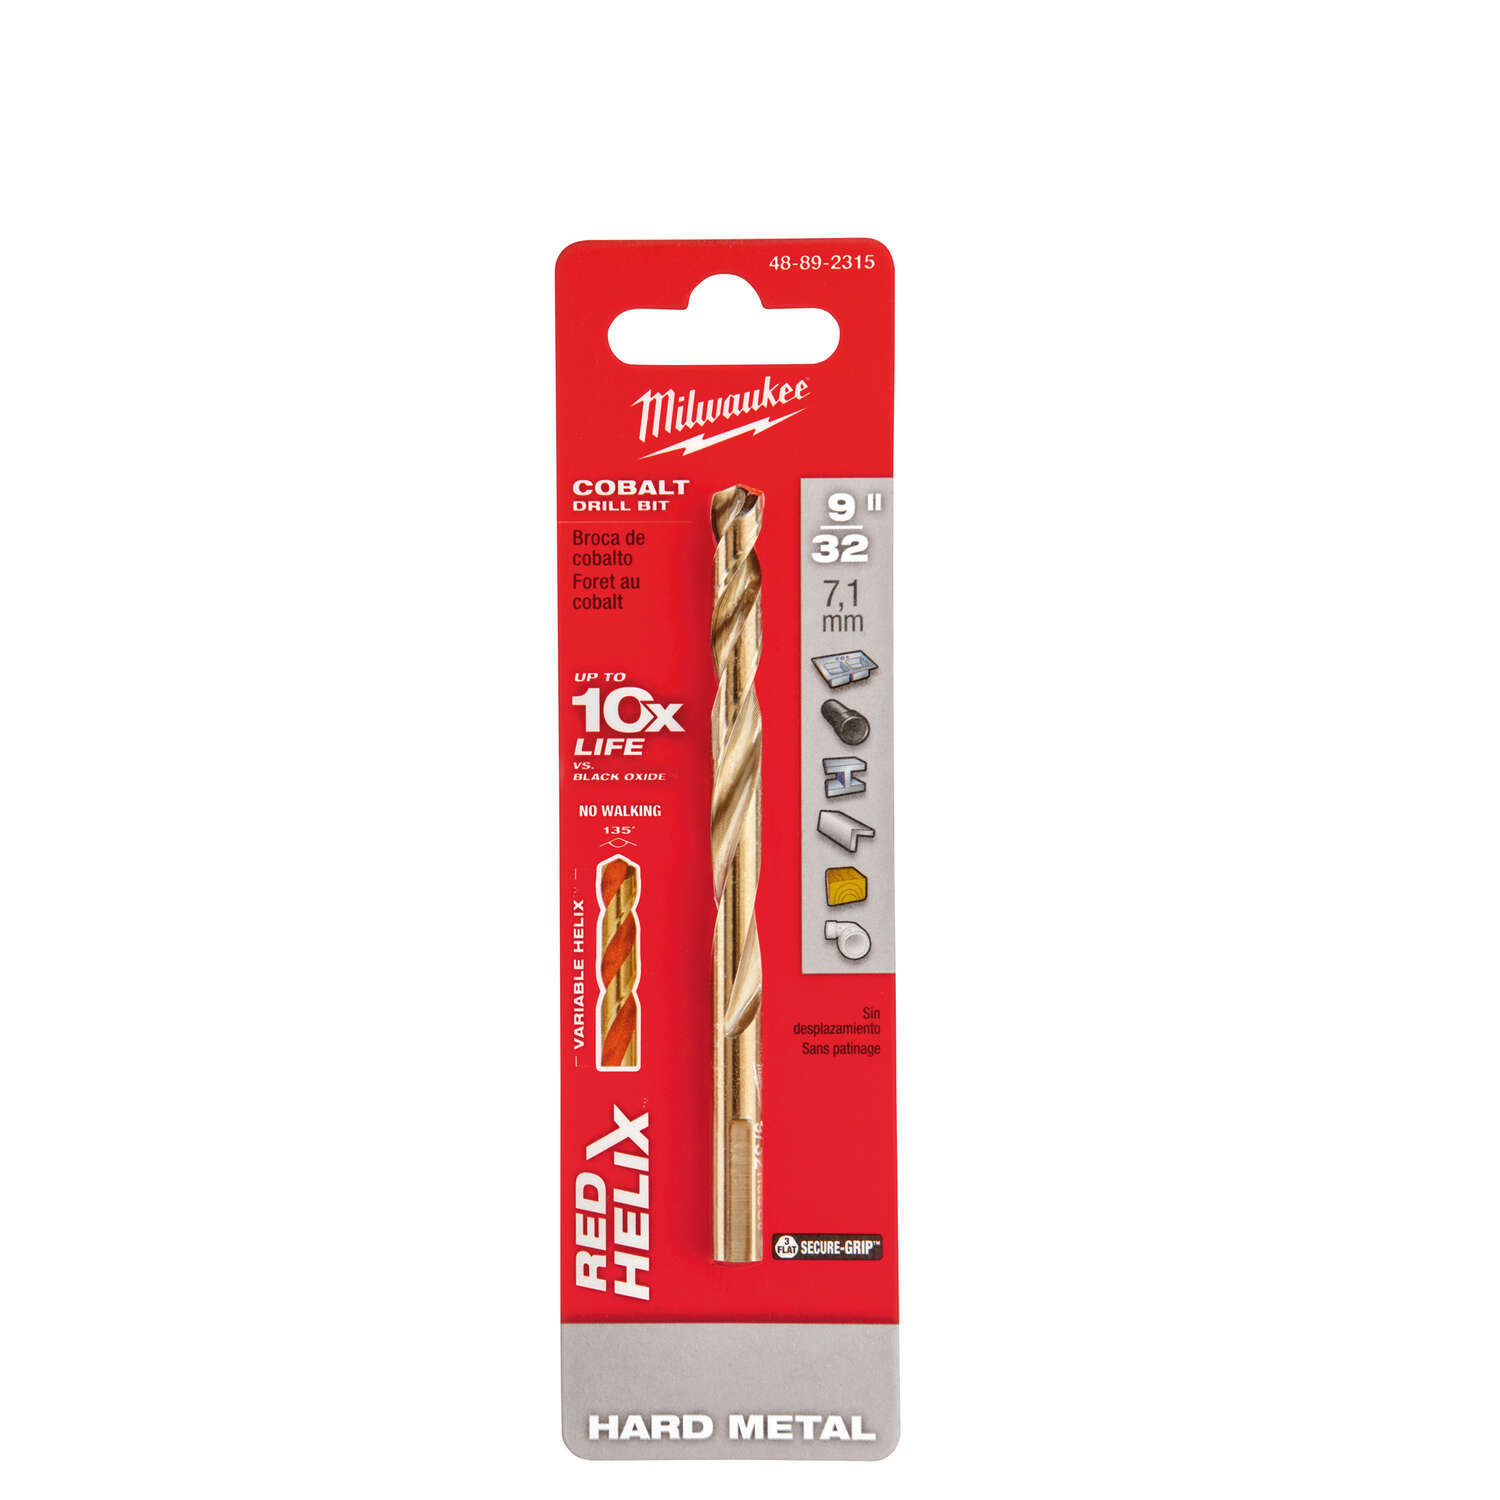 Milwaukee  RED HELIX  9/32 in.  x 4-5/16 in. L Cobalt Steel  THUNDERBOLT  Drill Bit  1 pc.